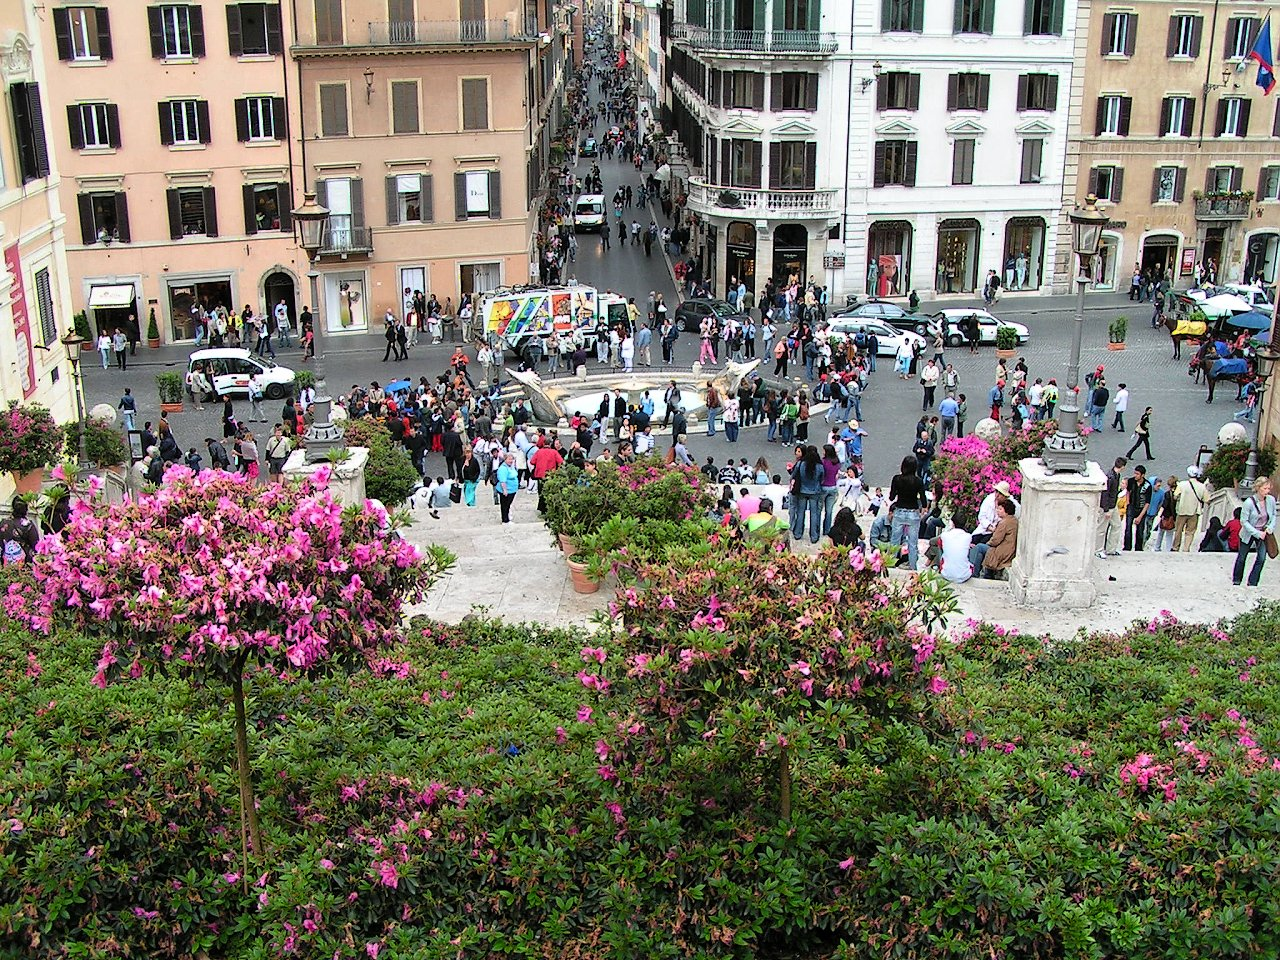 Spanish Steps, Piazza di Spagna, Rome Attractions, Best Places to visit in Rome